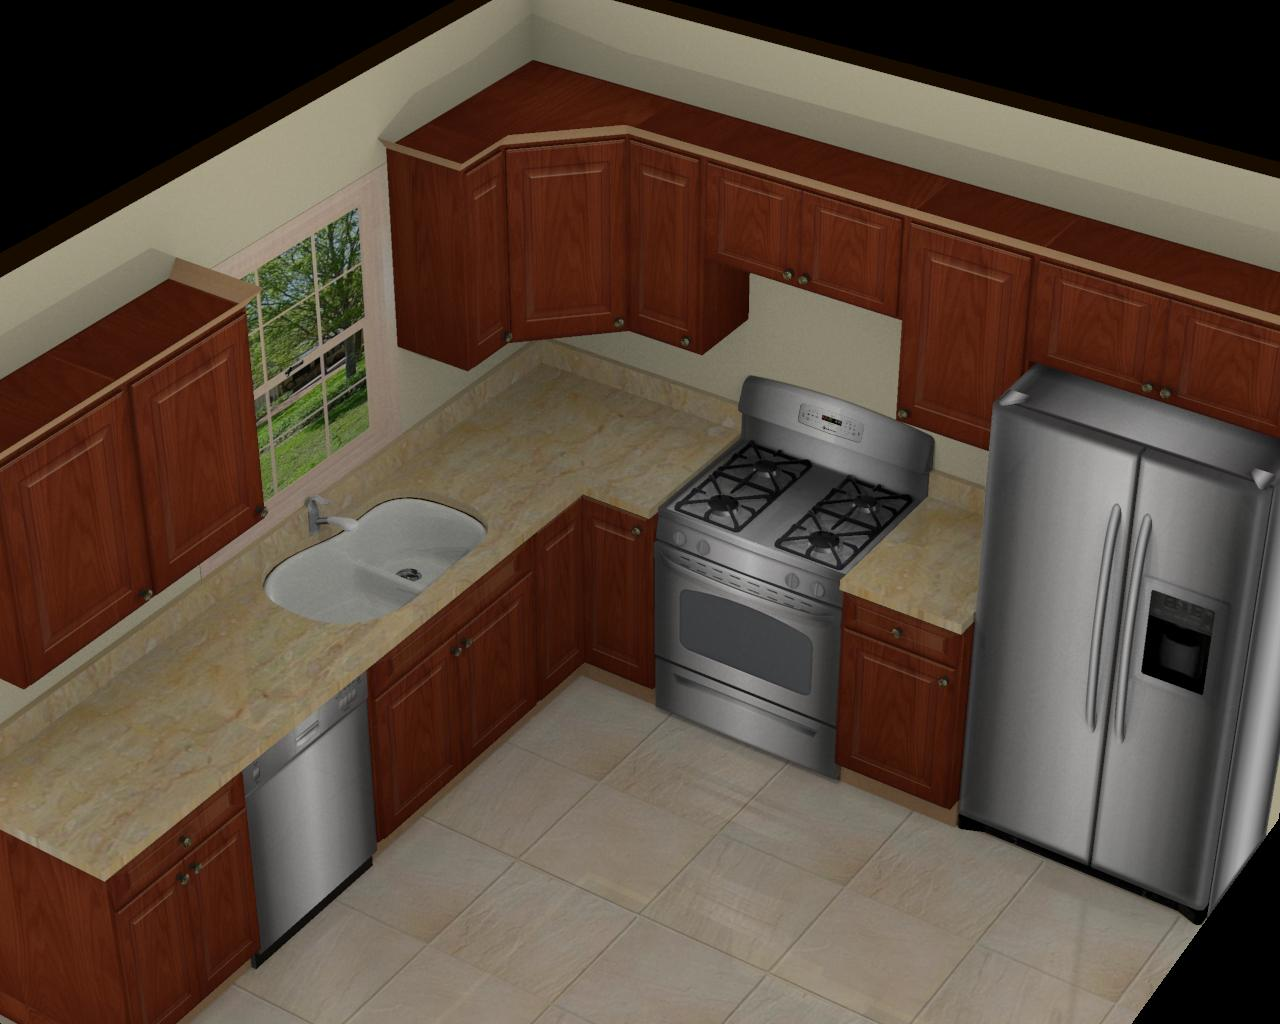 foundation dezin decor 3d kitchen model design. Black Bedroom Furniture Sets. Home Design Ideas